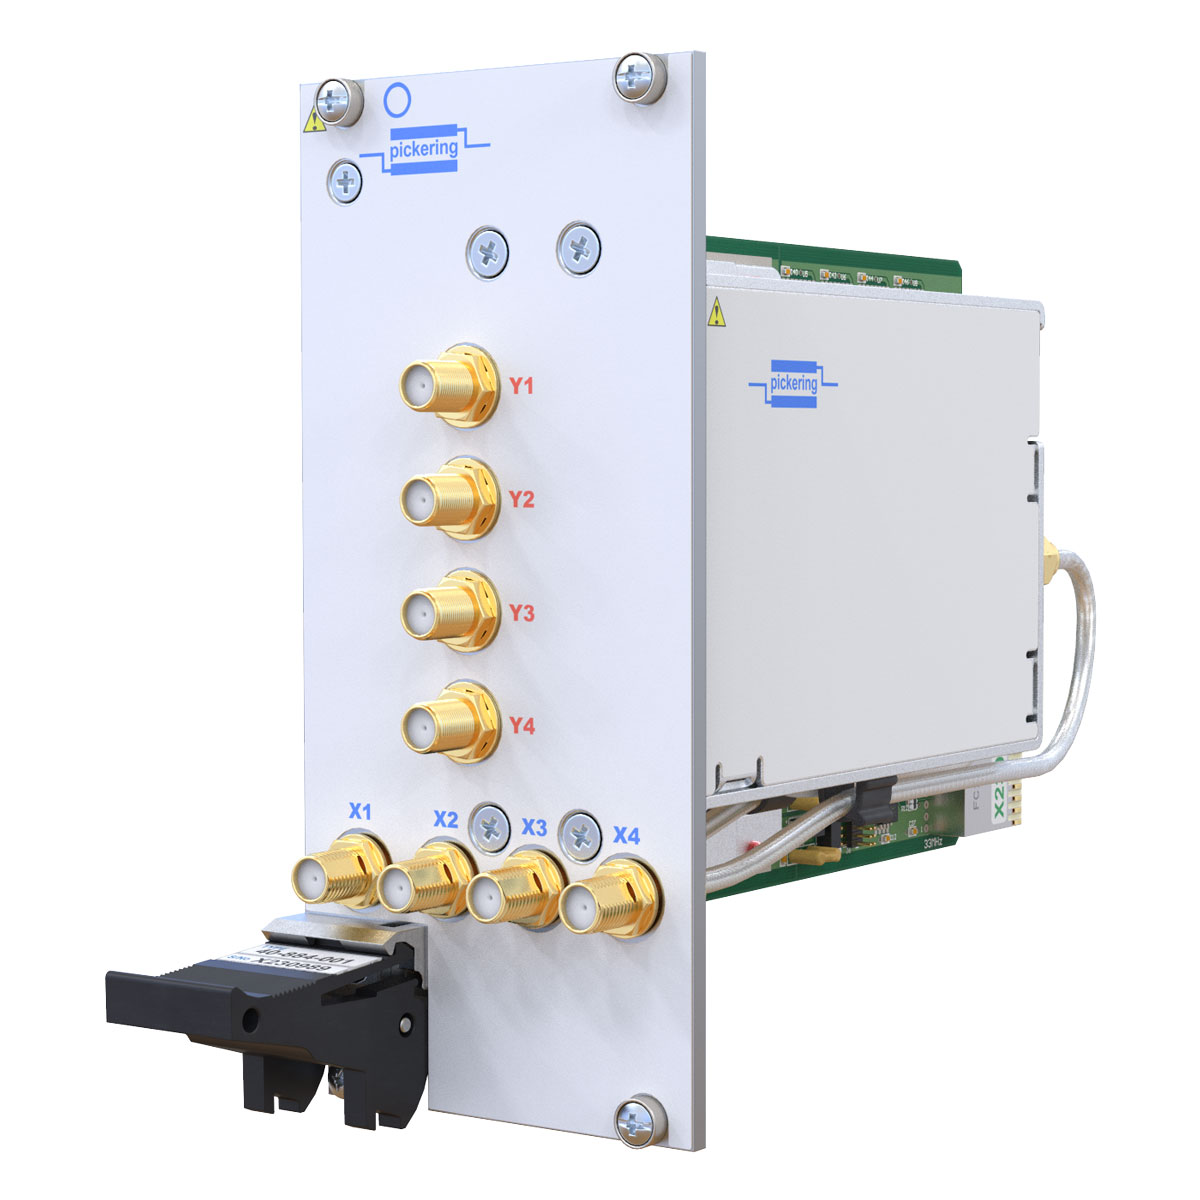 New Modular Switching Simulation Products Pickering Interfaces Relay Switch Lifetime 40 884a Pxi 8ghz 4x4 Rf Matrix Module